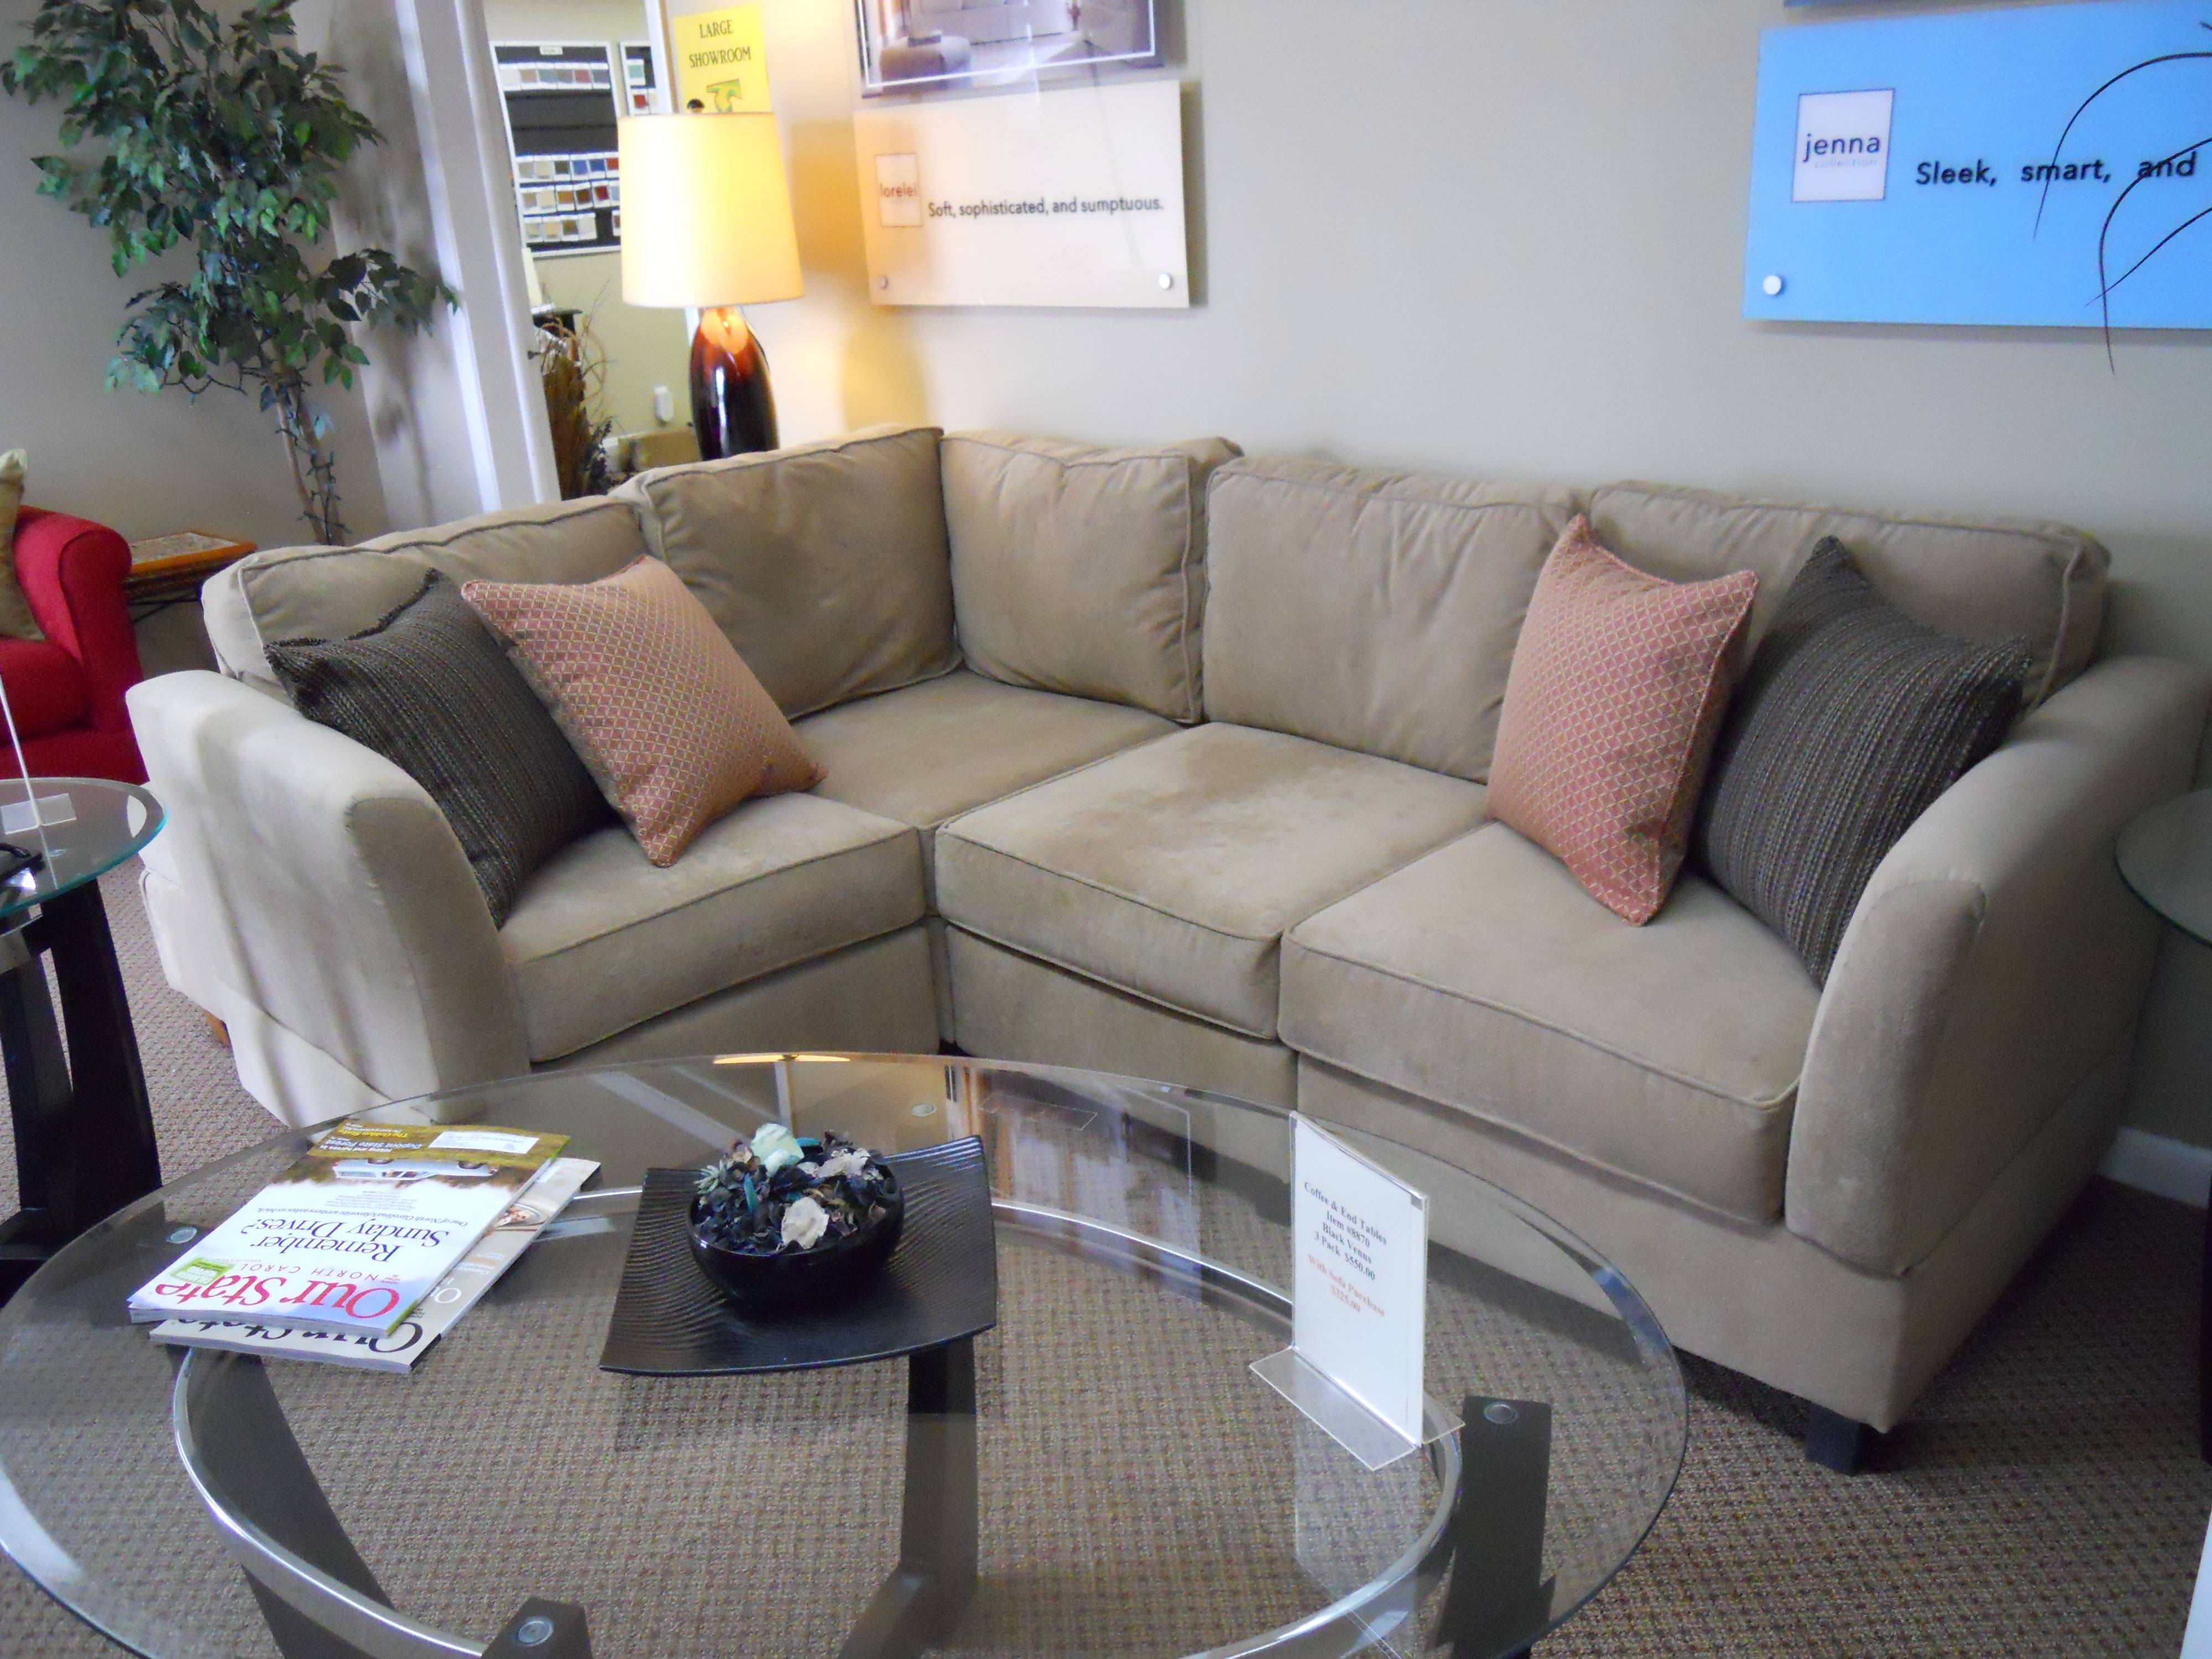 Interesting Sectional Sofa For Small Space 65 In Sectional Sofas intended for Cincinnati Sectional Sofas (Image 6 of 15)